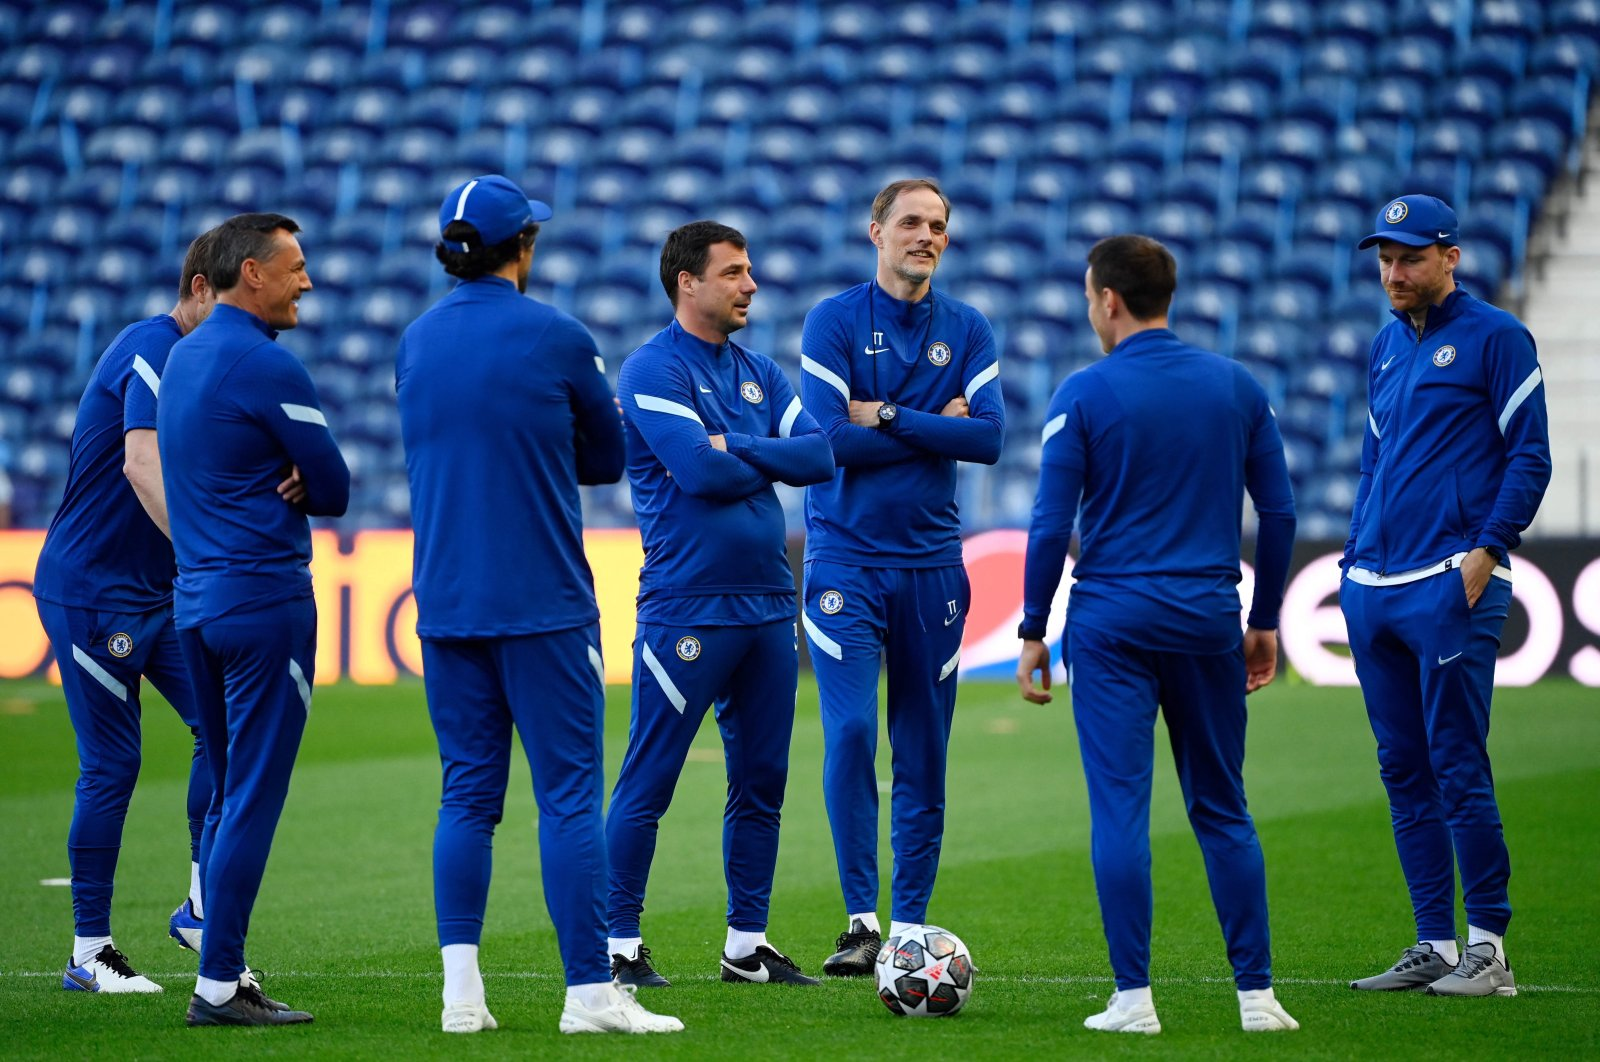 Chelsea's German coach Thomas Tuchel (3R) attends a training session at the Dragao stadium in Porto on May 28, 2021 on the eve of the UEFA Champions League final football match between Manchester City and Chelsea. (AFP Photo)